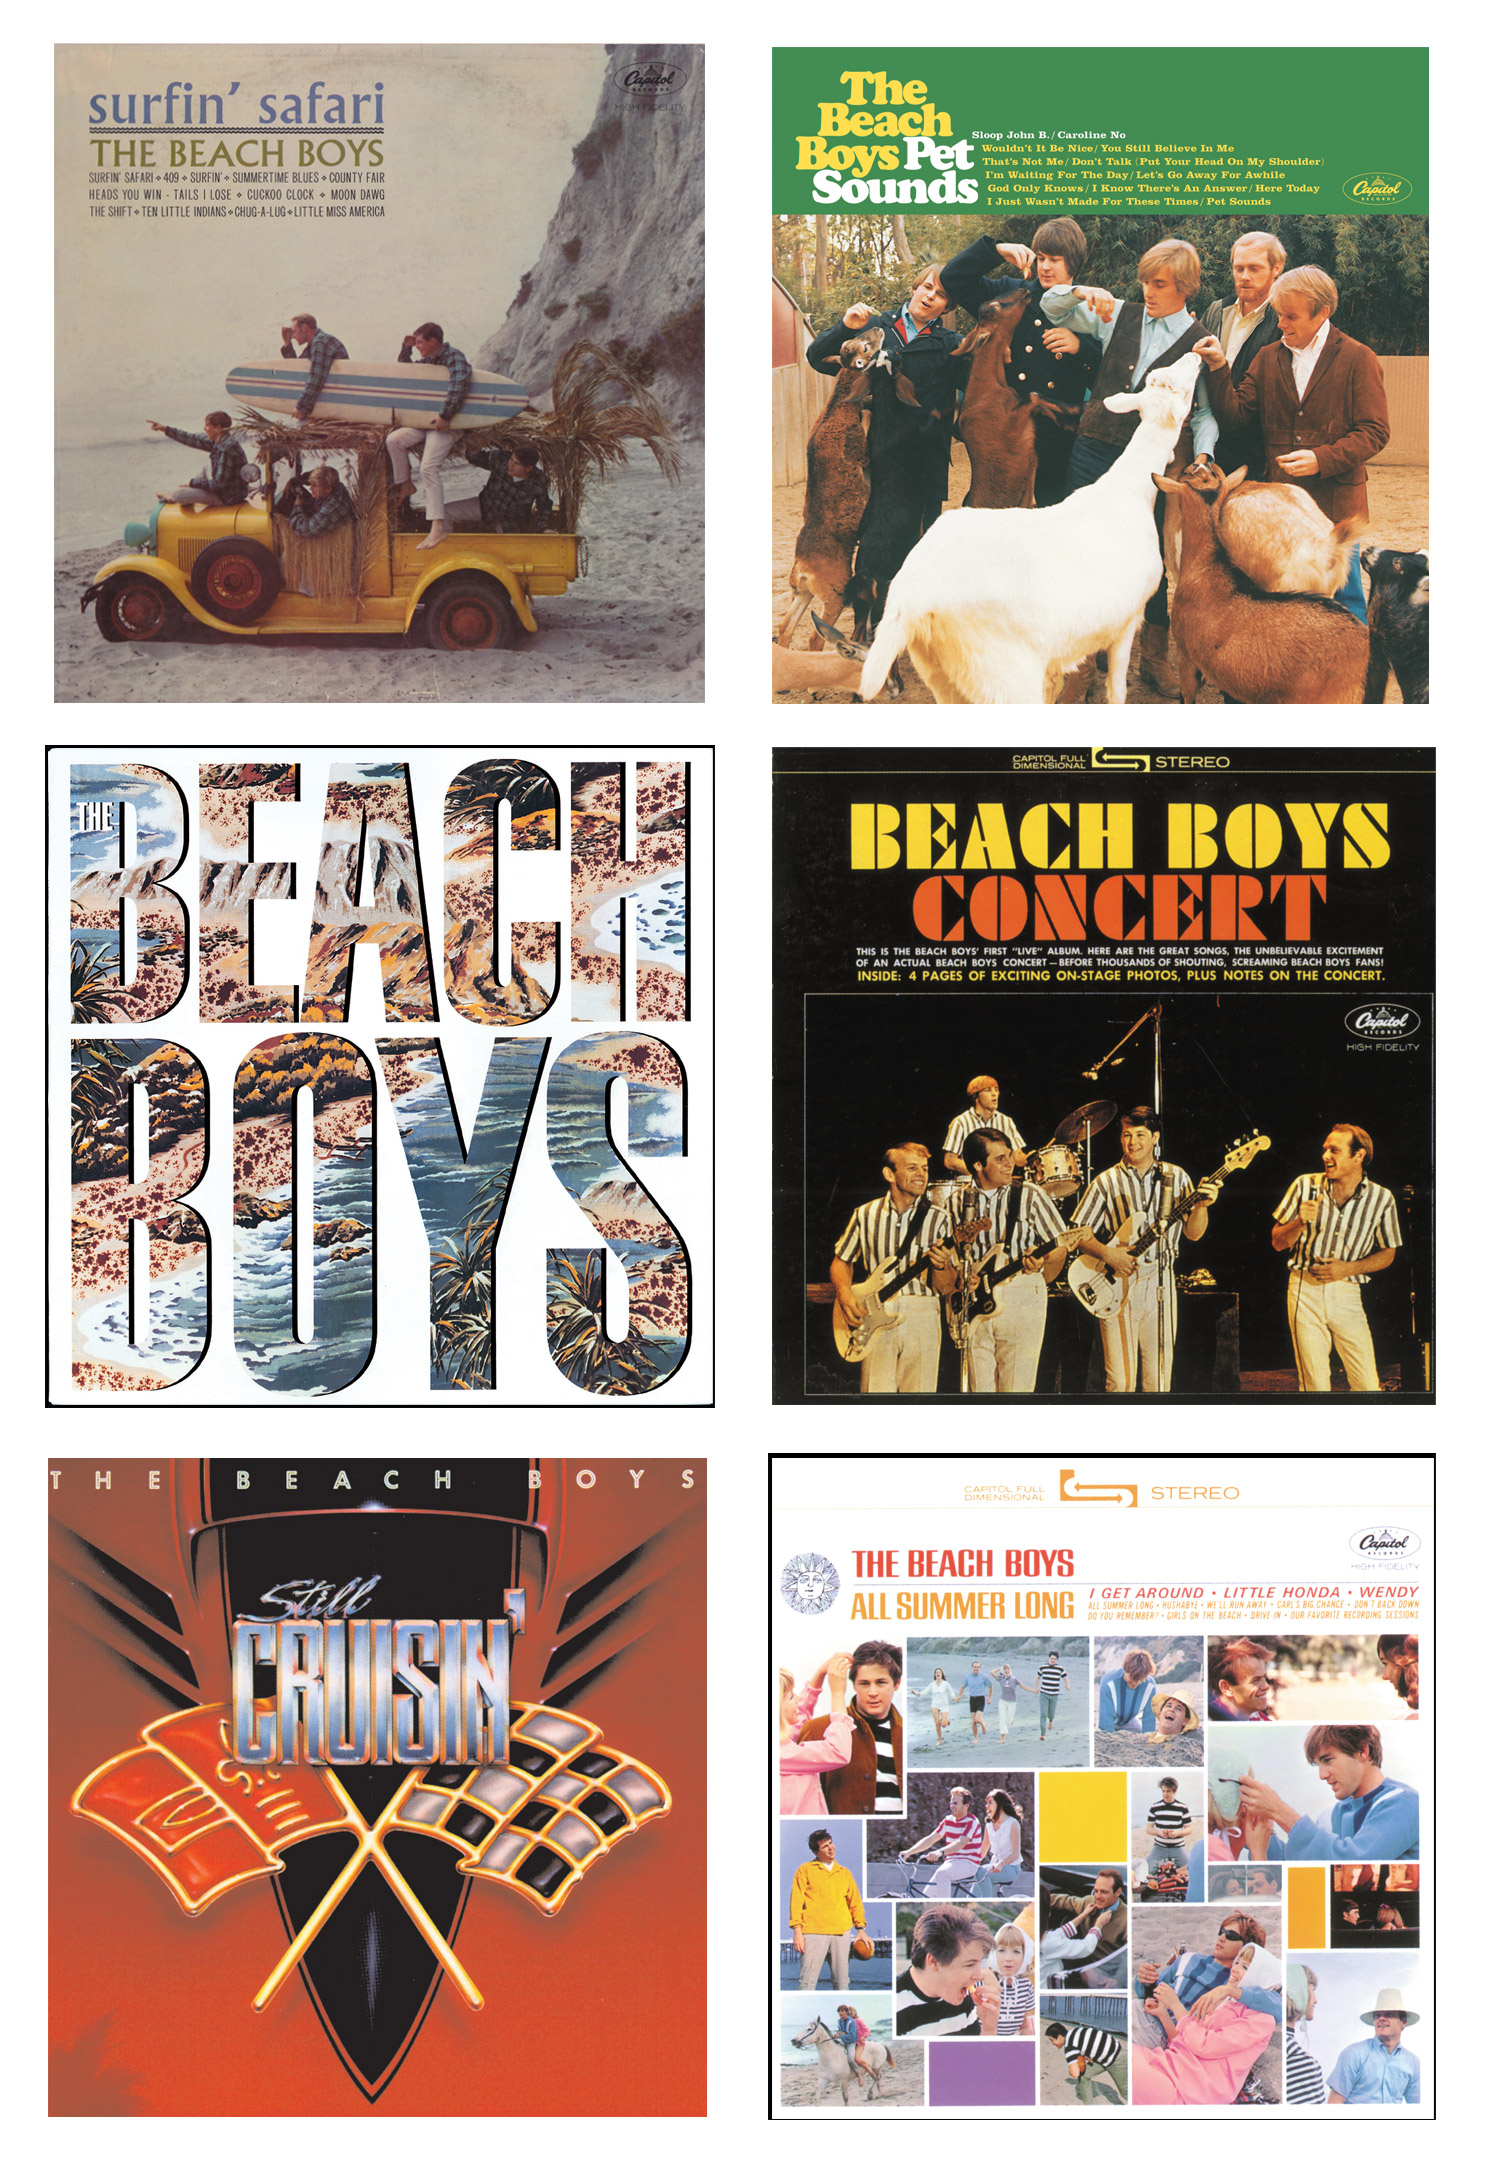 The Beach Boys x ROXY Collection